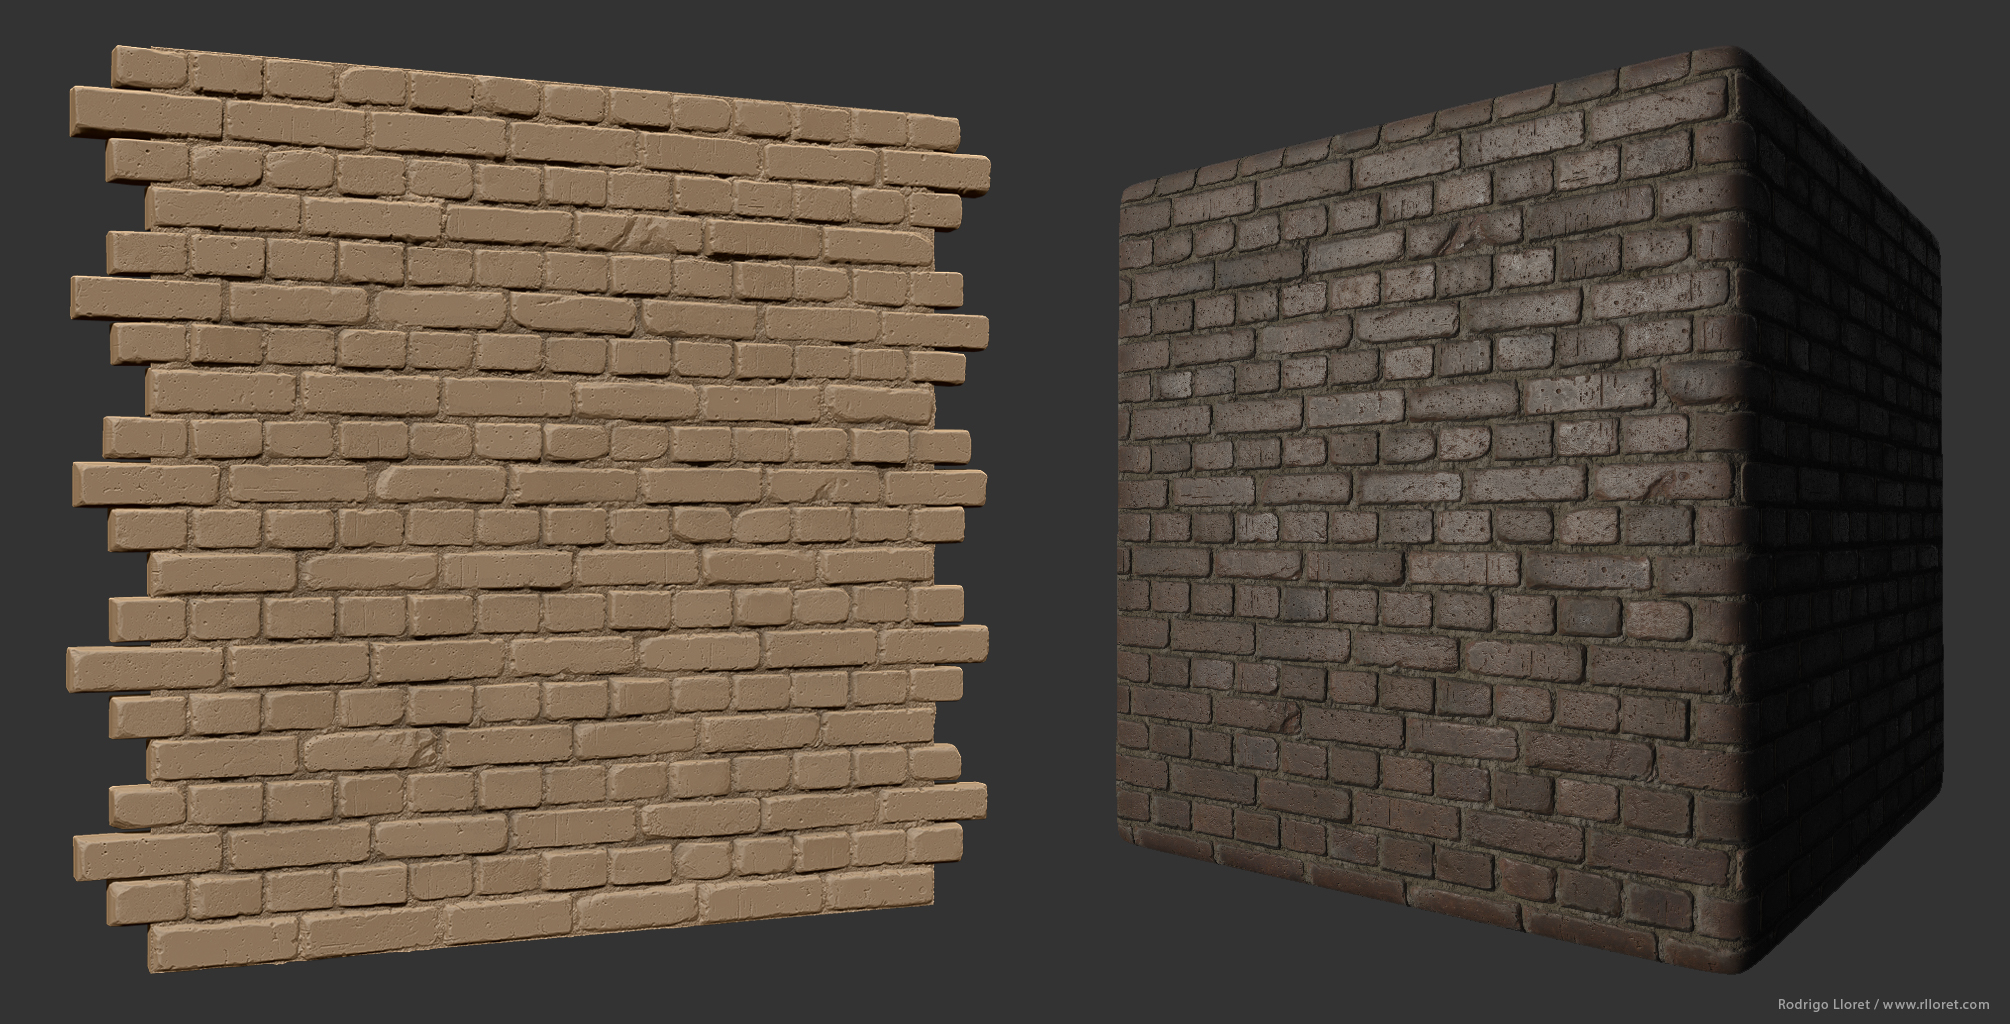 Tile_Bricks1_A.jpg